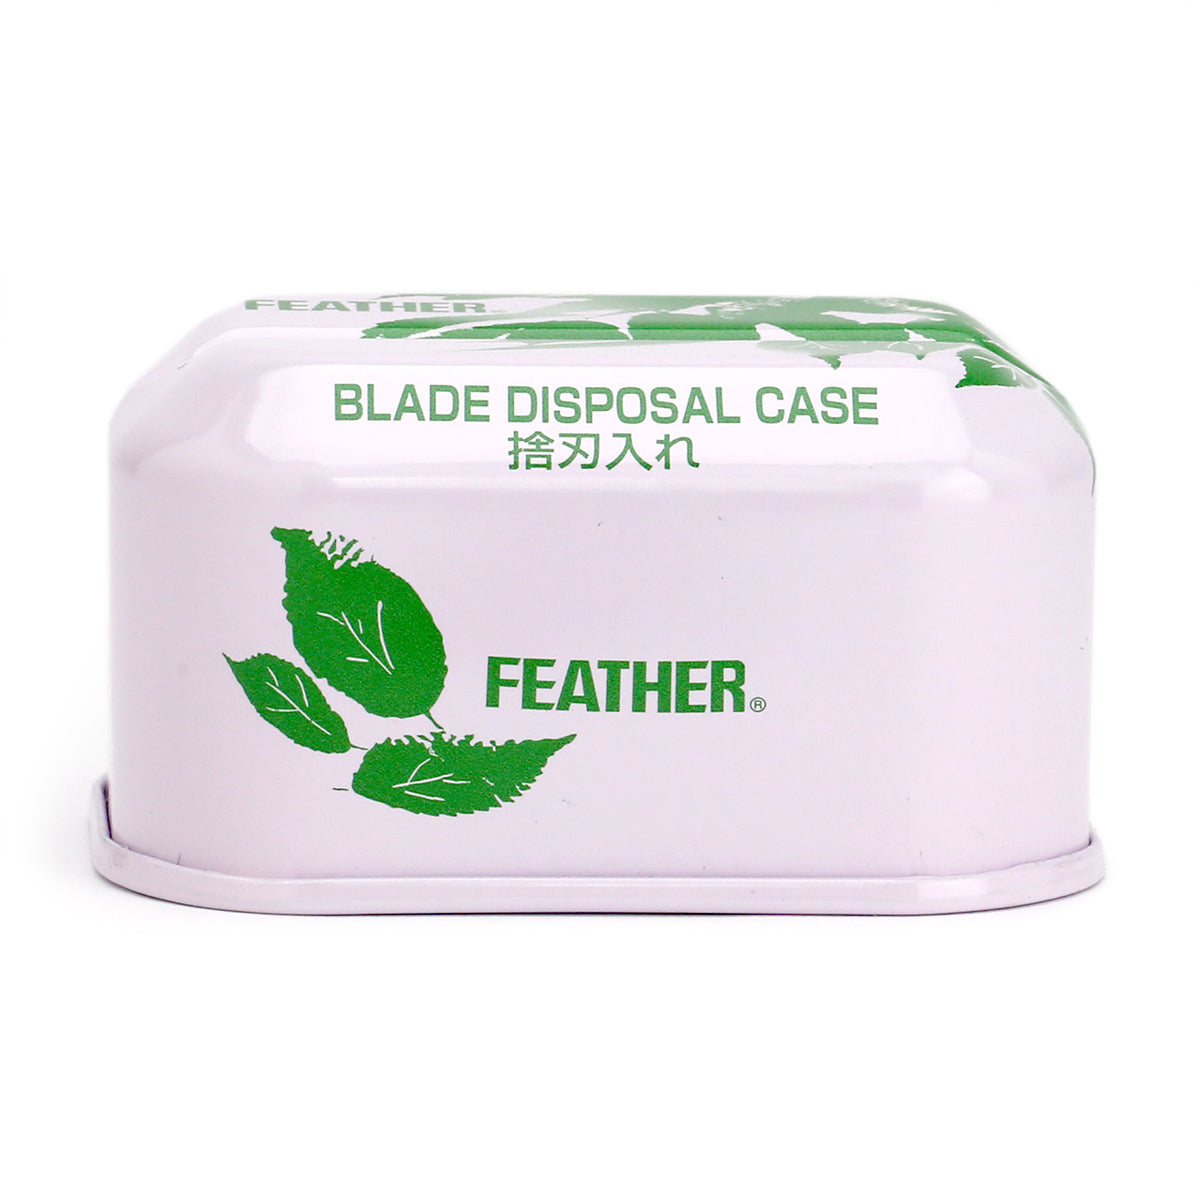 Feather blade bank disposal case, side view